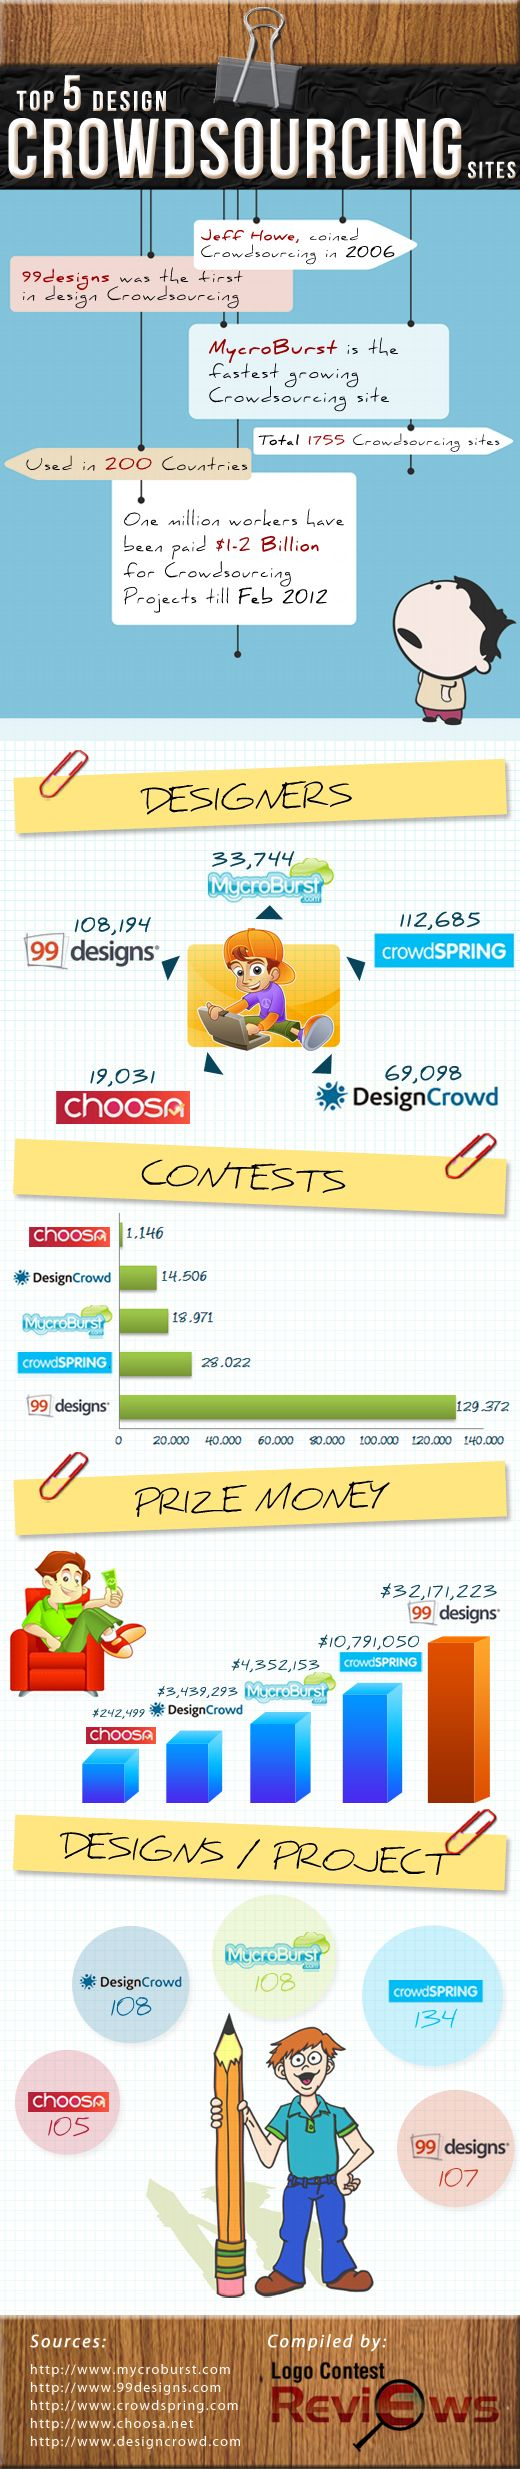 Perfect Check The First Infographic On Top 5 Design Crowdsourcing Sites Which  Illustrates Interesting Facts And Figures About Top Crowdsourcing Sit.